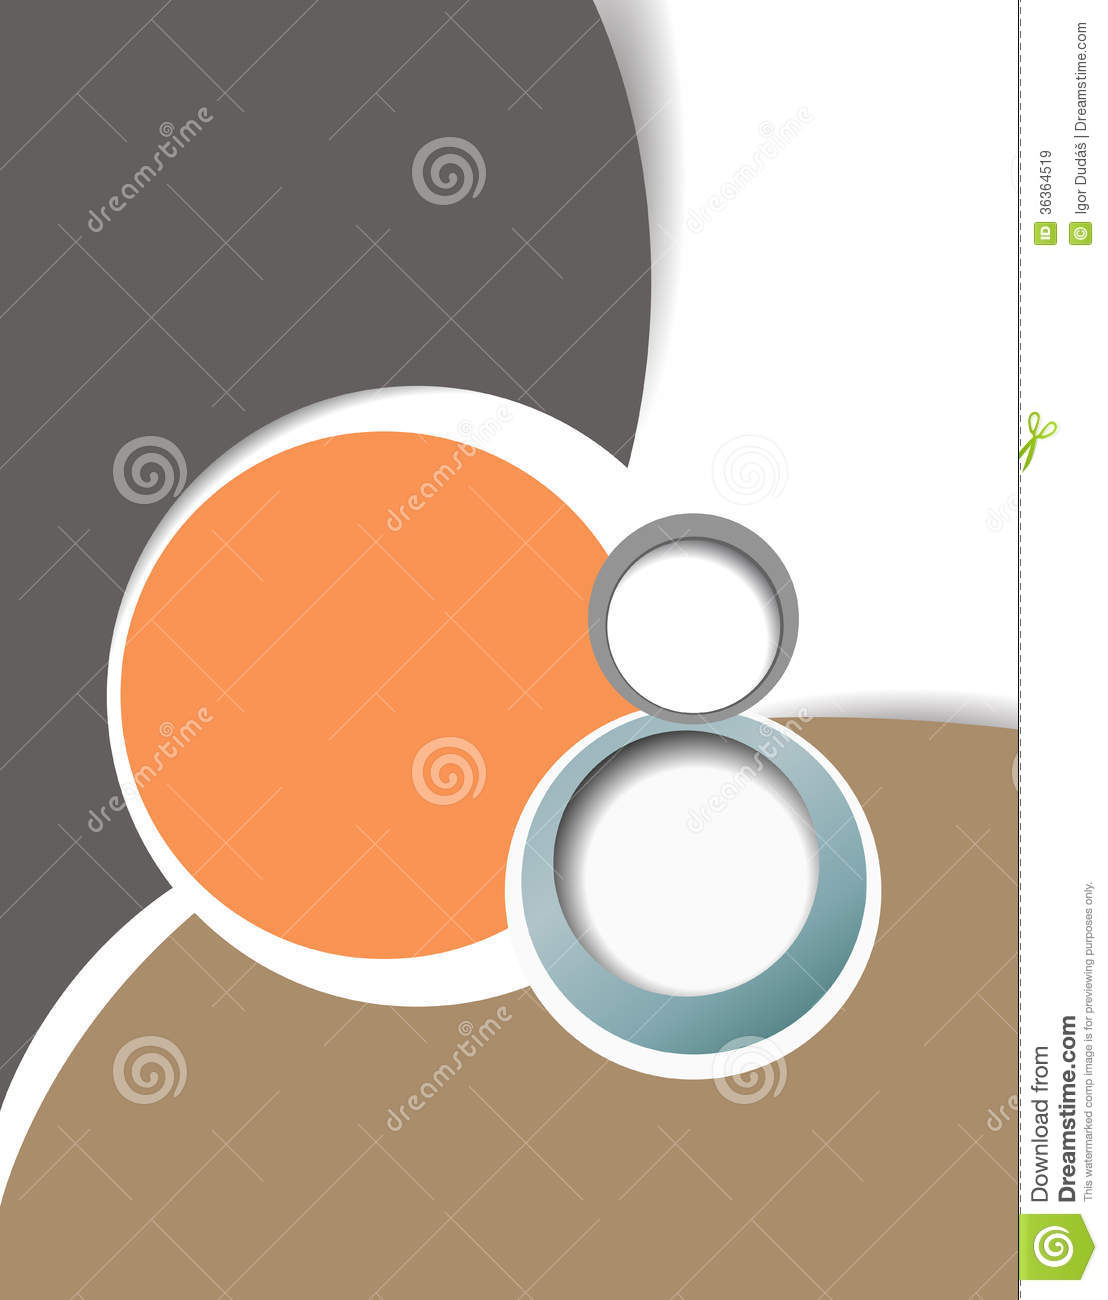 Design layout template stock illustration image of for Free design templates